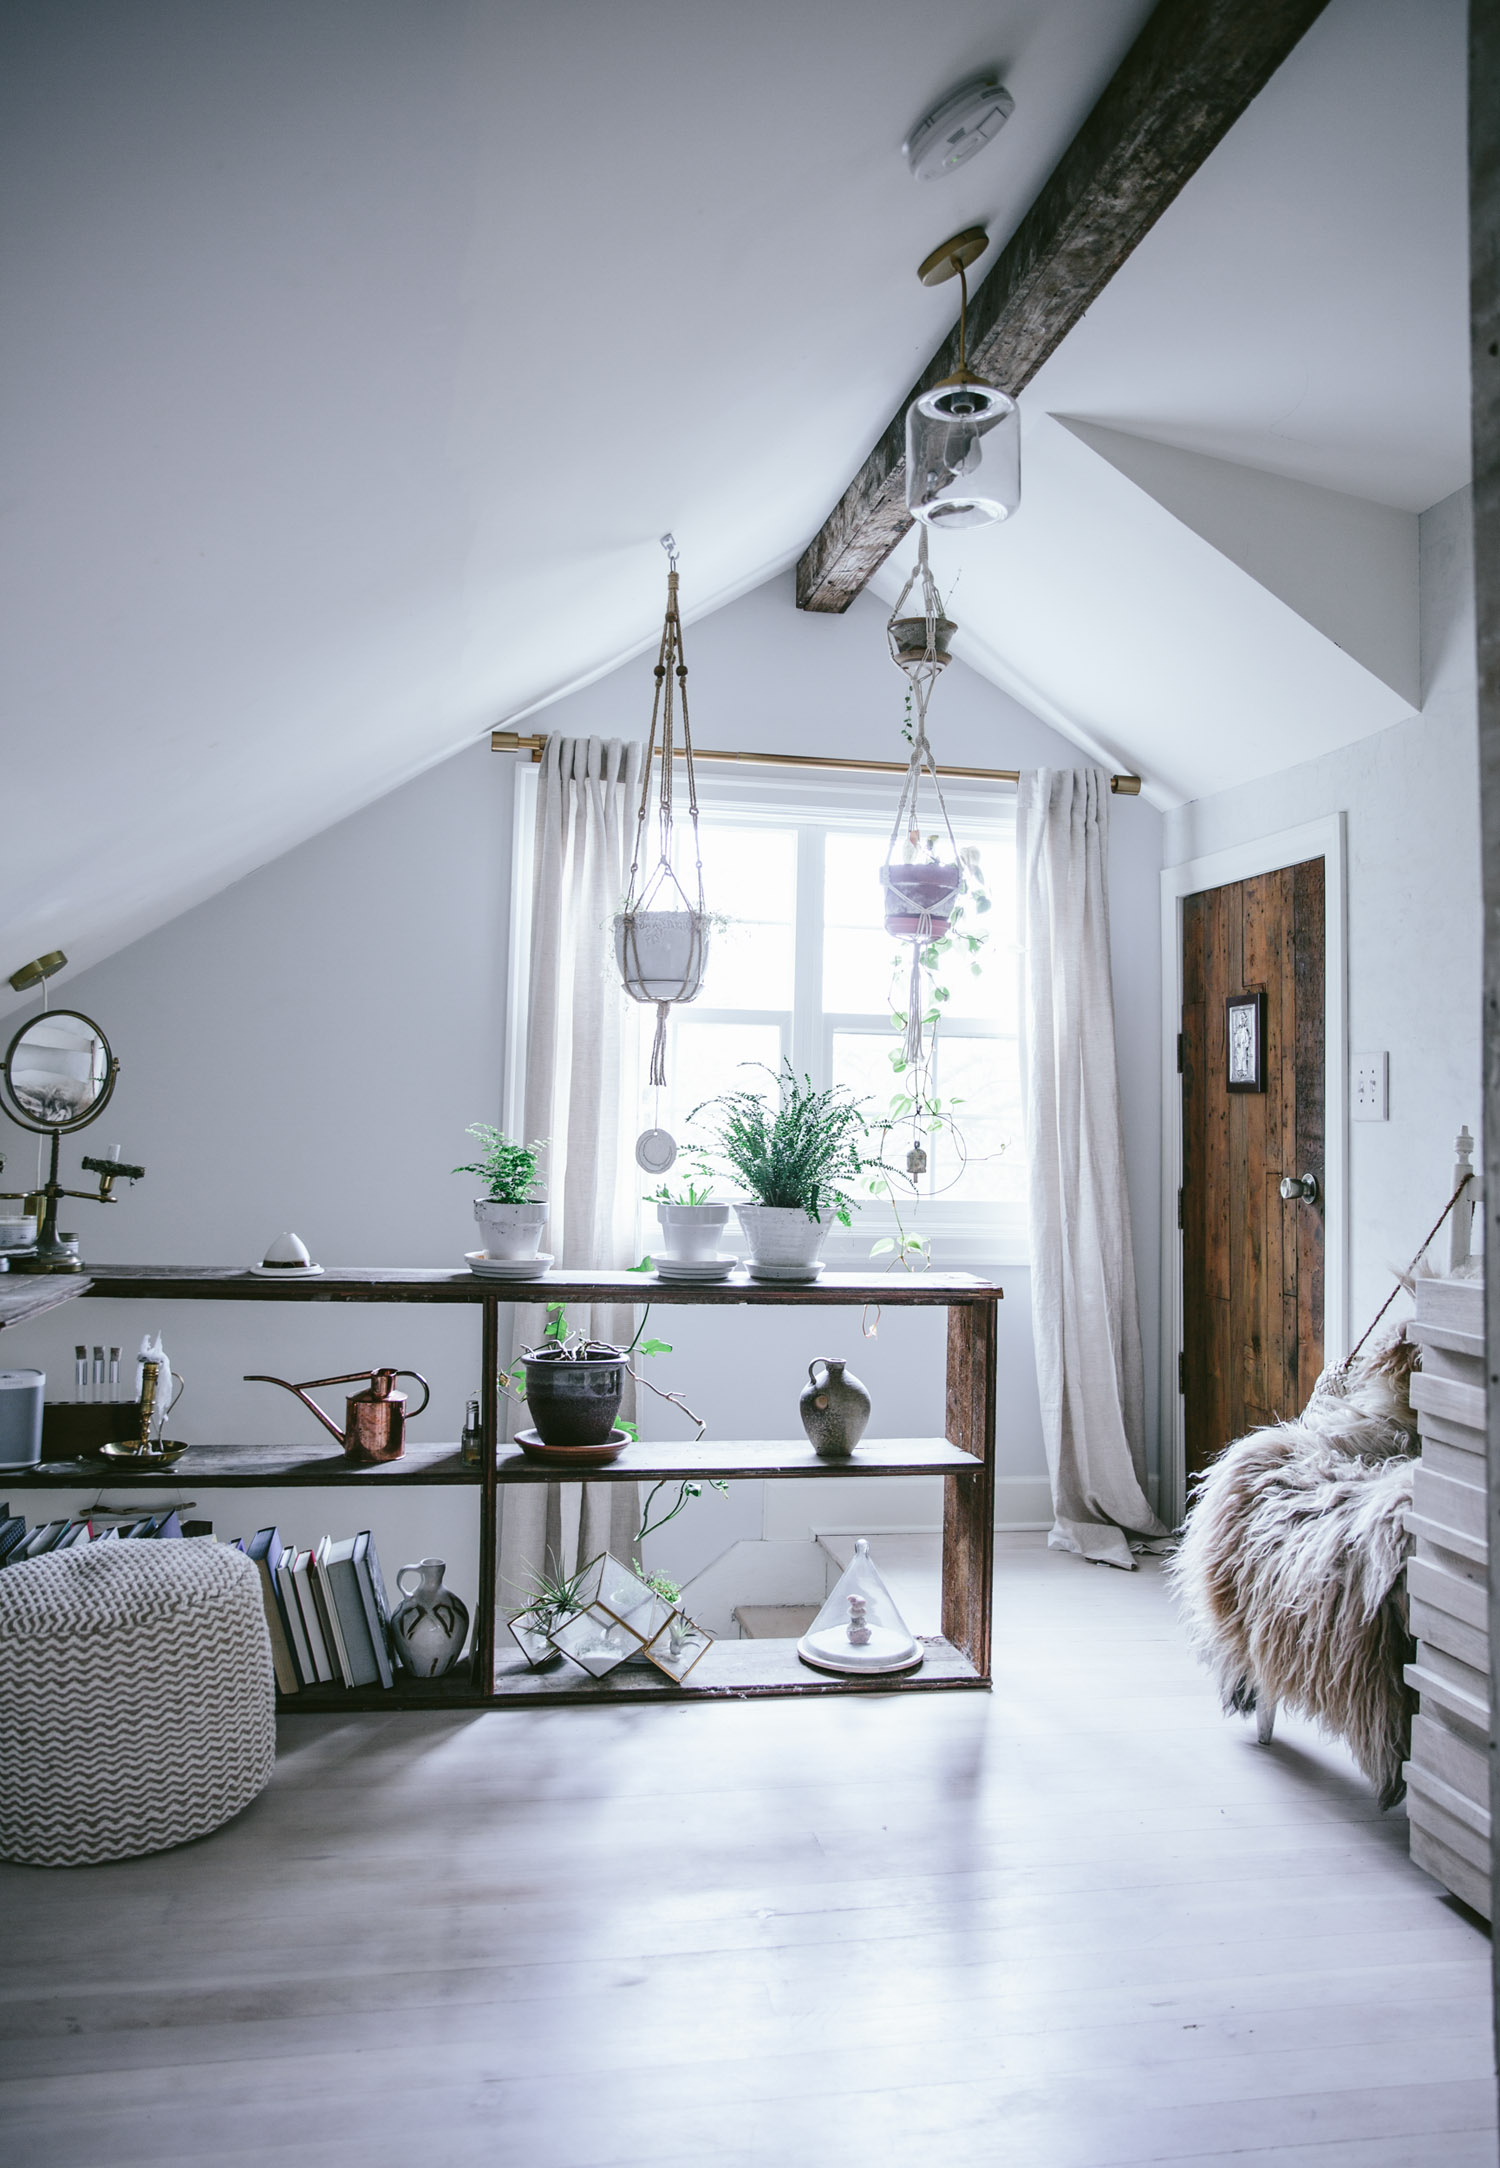 Thereu0027s something charming about attic bedrooms donu0027t you think so? Love this makeover via Westelm you can see how the bedroom looked before the rev& ... & A dreamy attic bedroom makeover - Daily Dream Decor